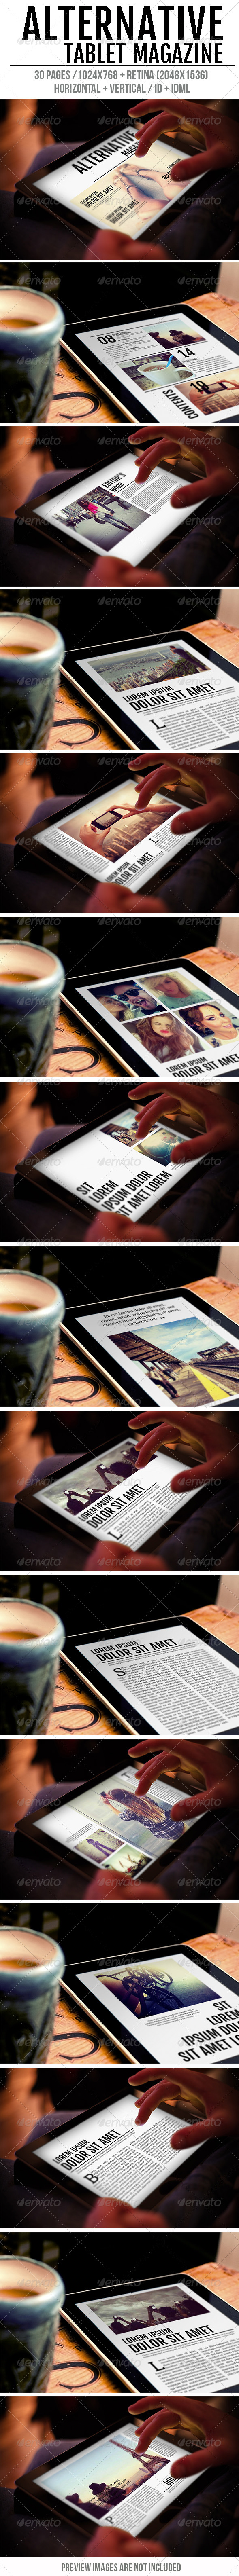 GraphicRiver Tablet Alternative Magazine 7872999